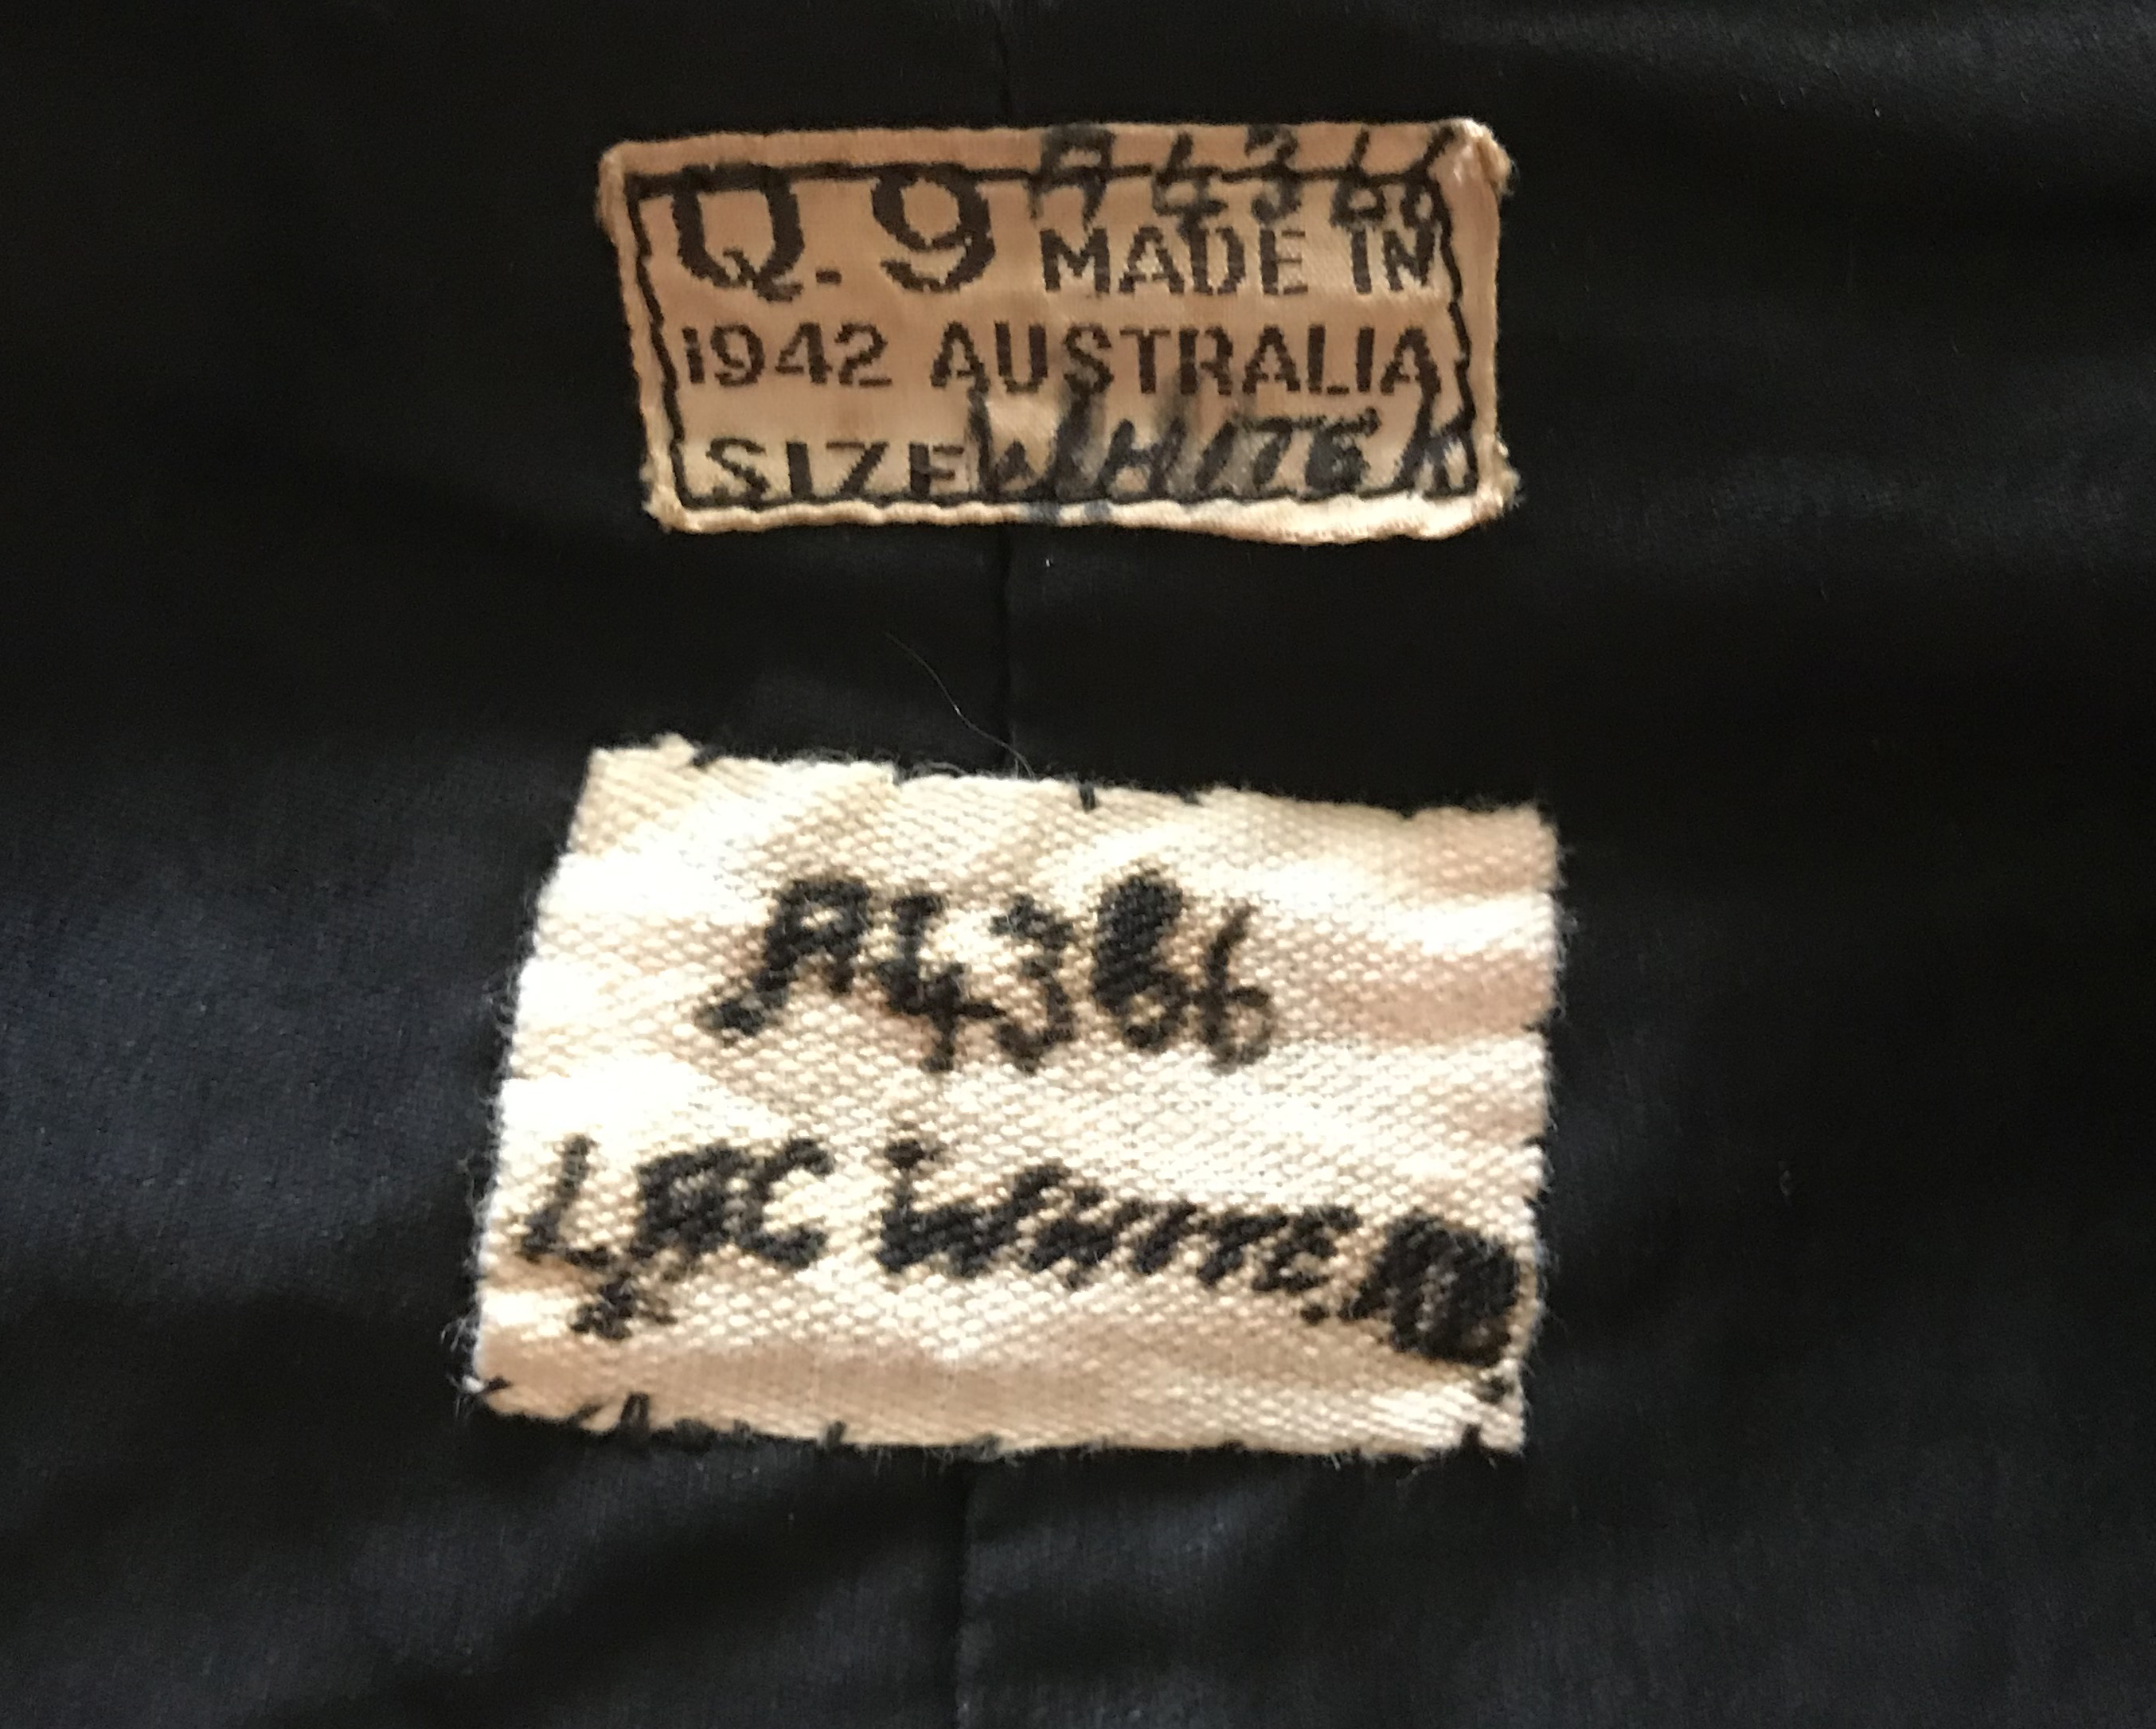 RAAF other ranks service dress tunic dated 1942